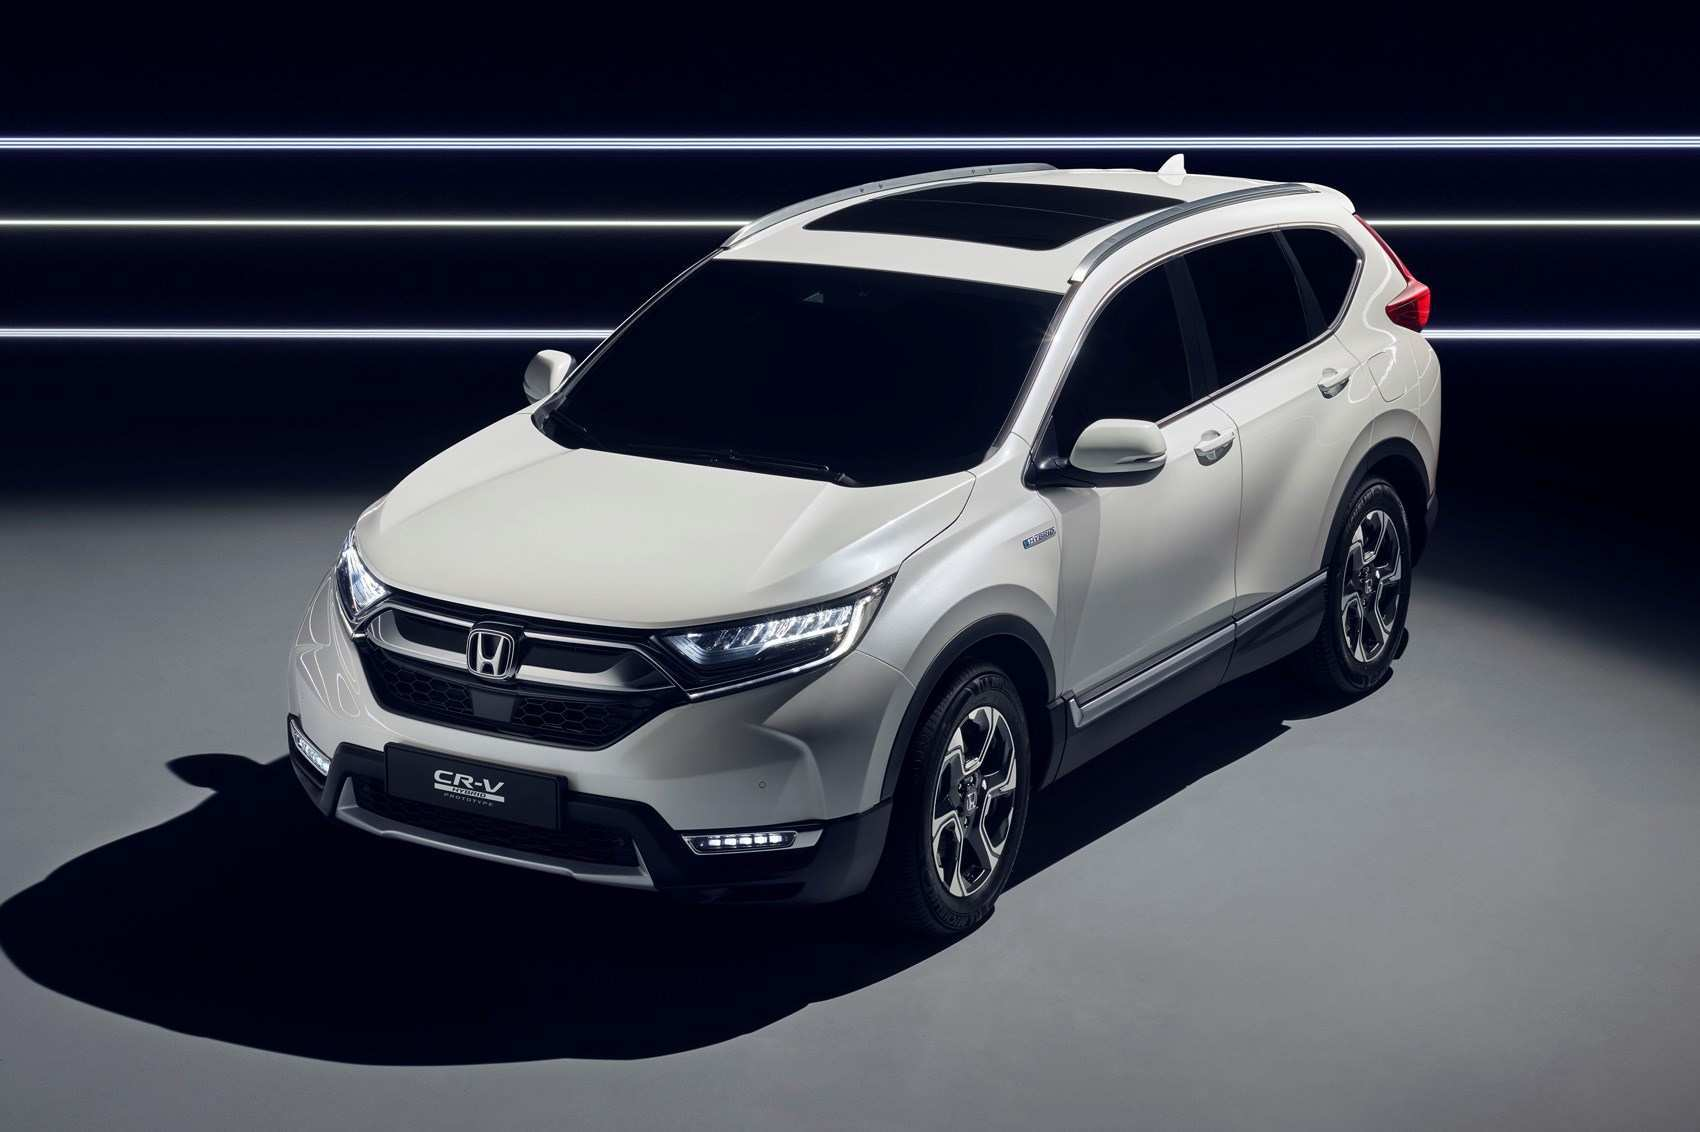 63 New When Will 2020 Honda Crv Be Released Interior